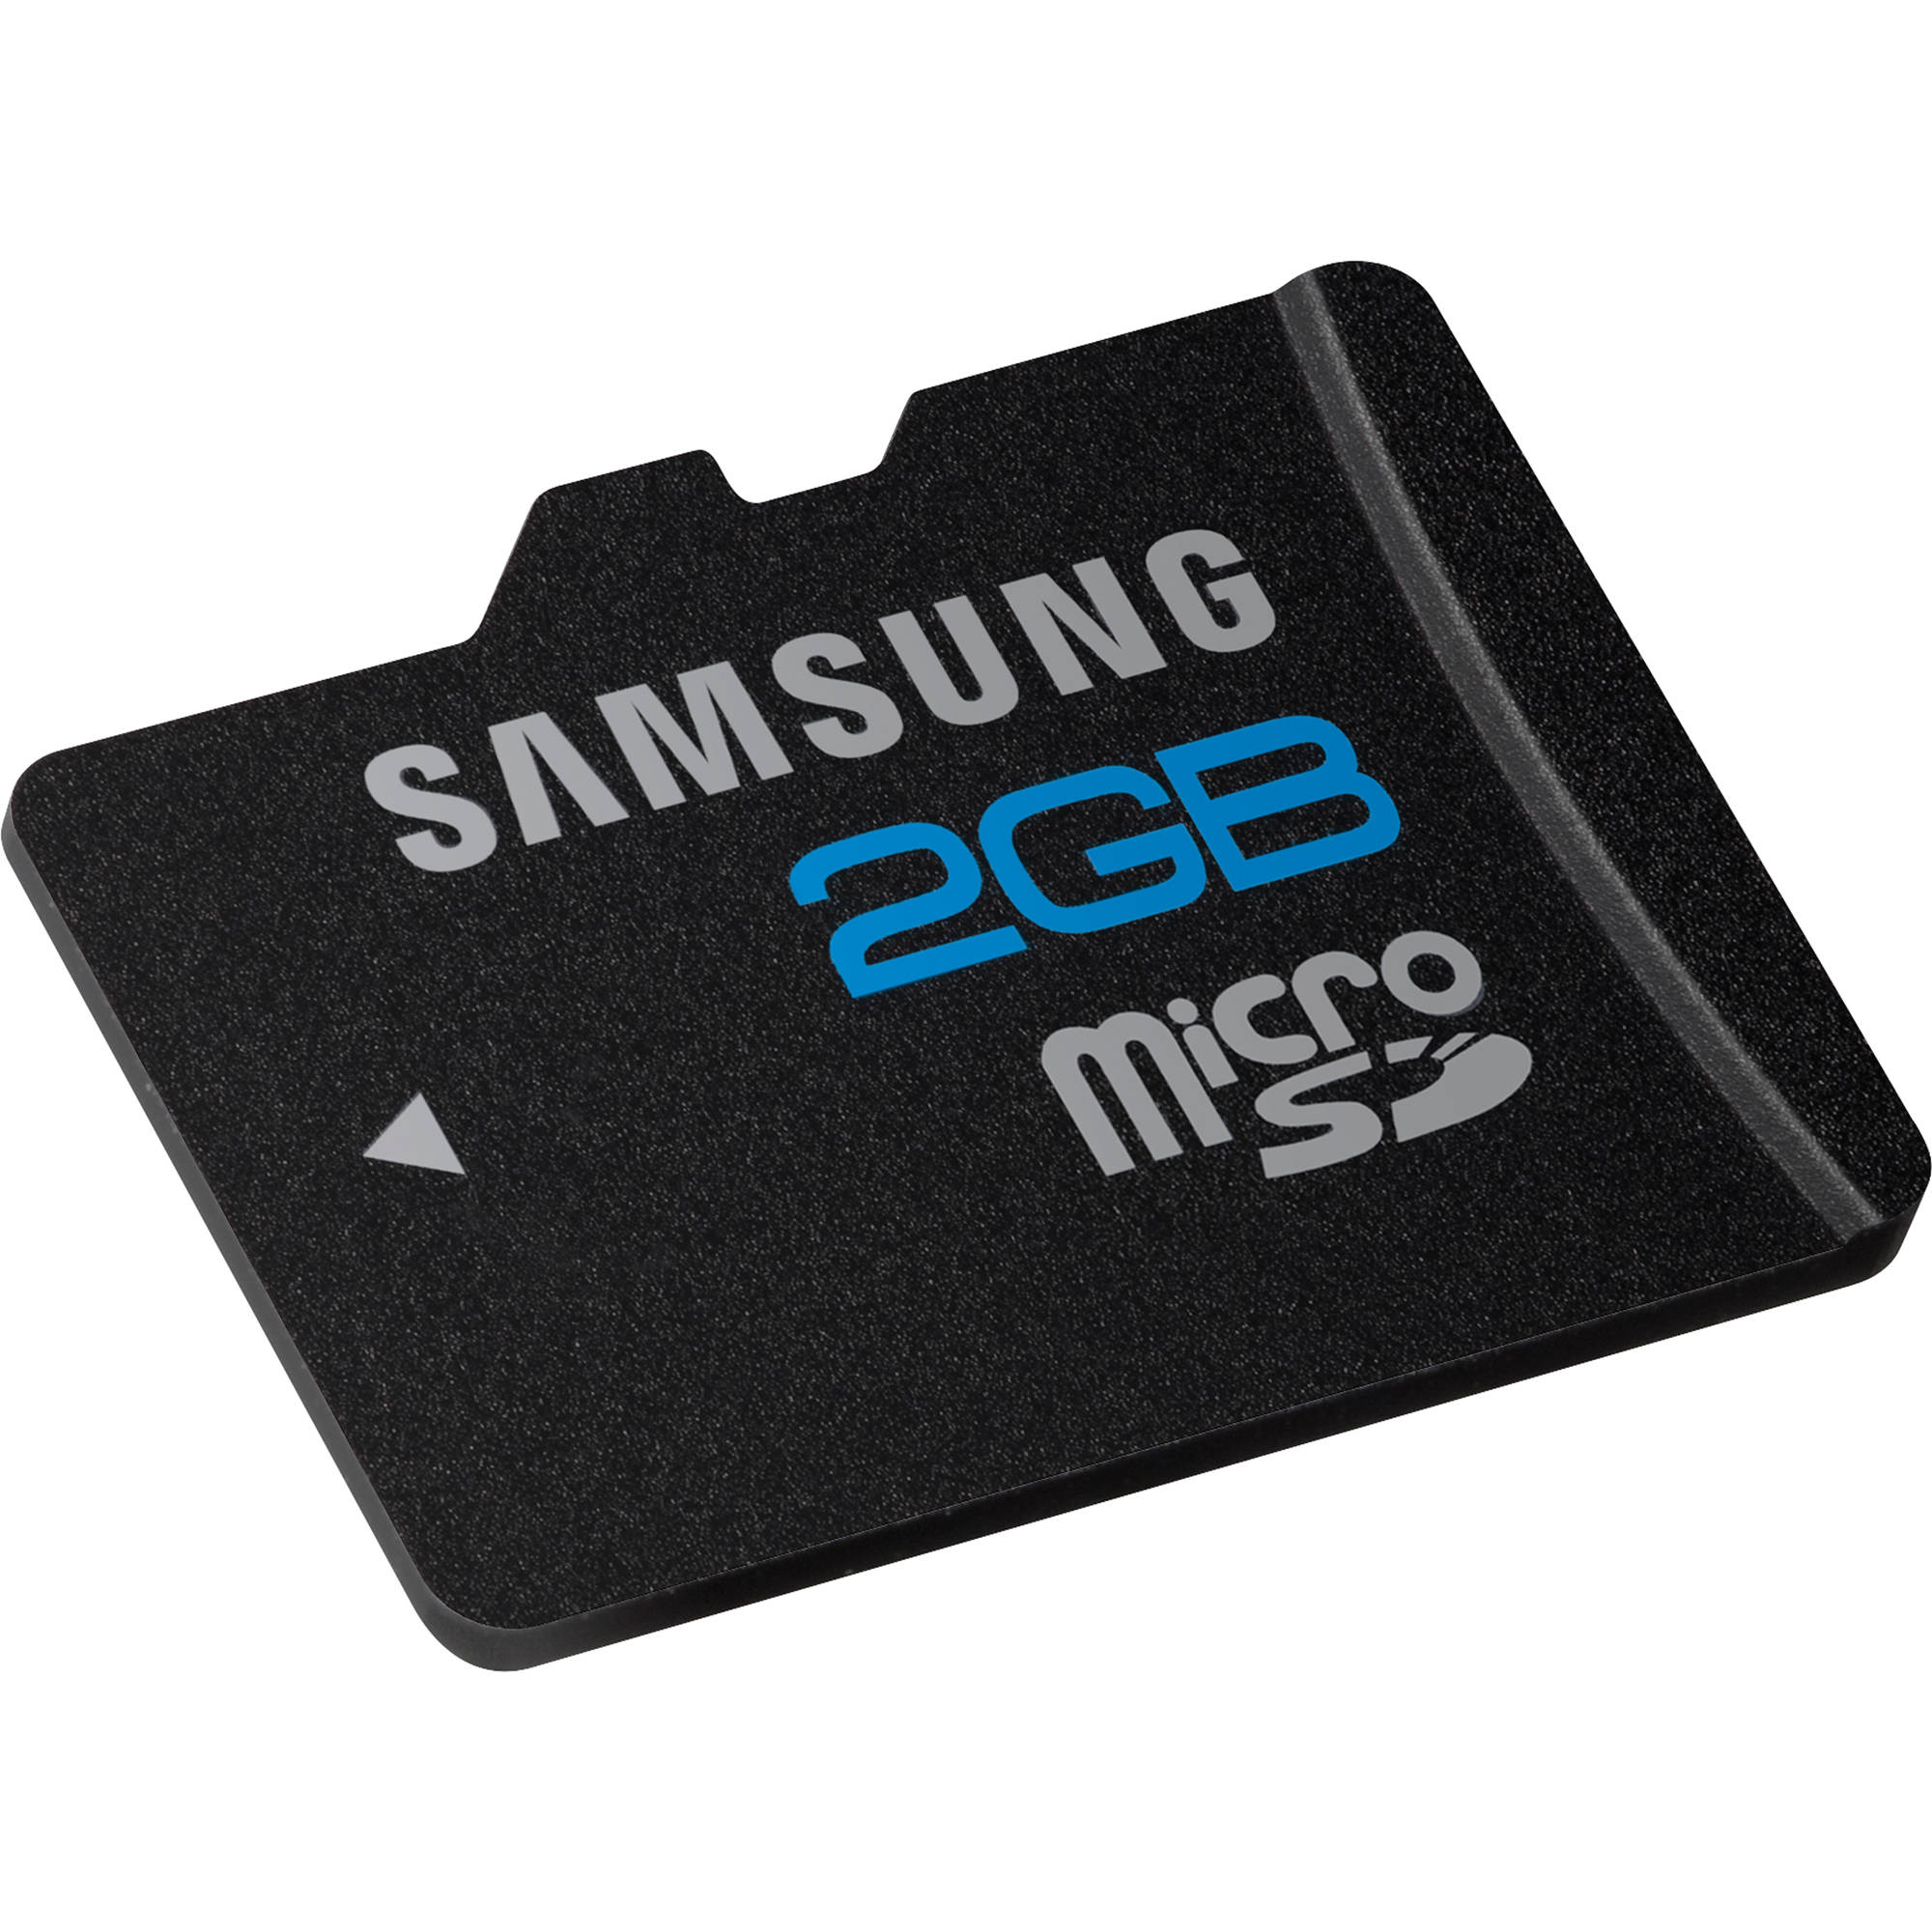 Samsung 2GB MicroSD Memory Card High Speed Series With Adapter